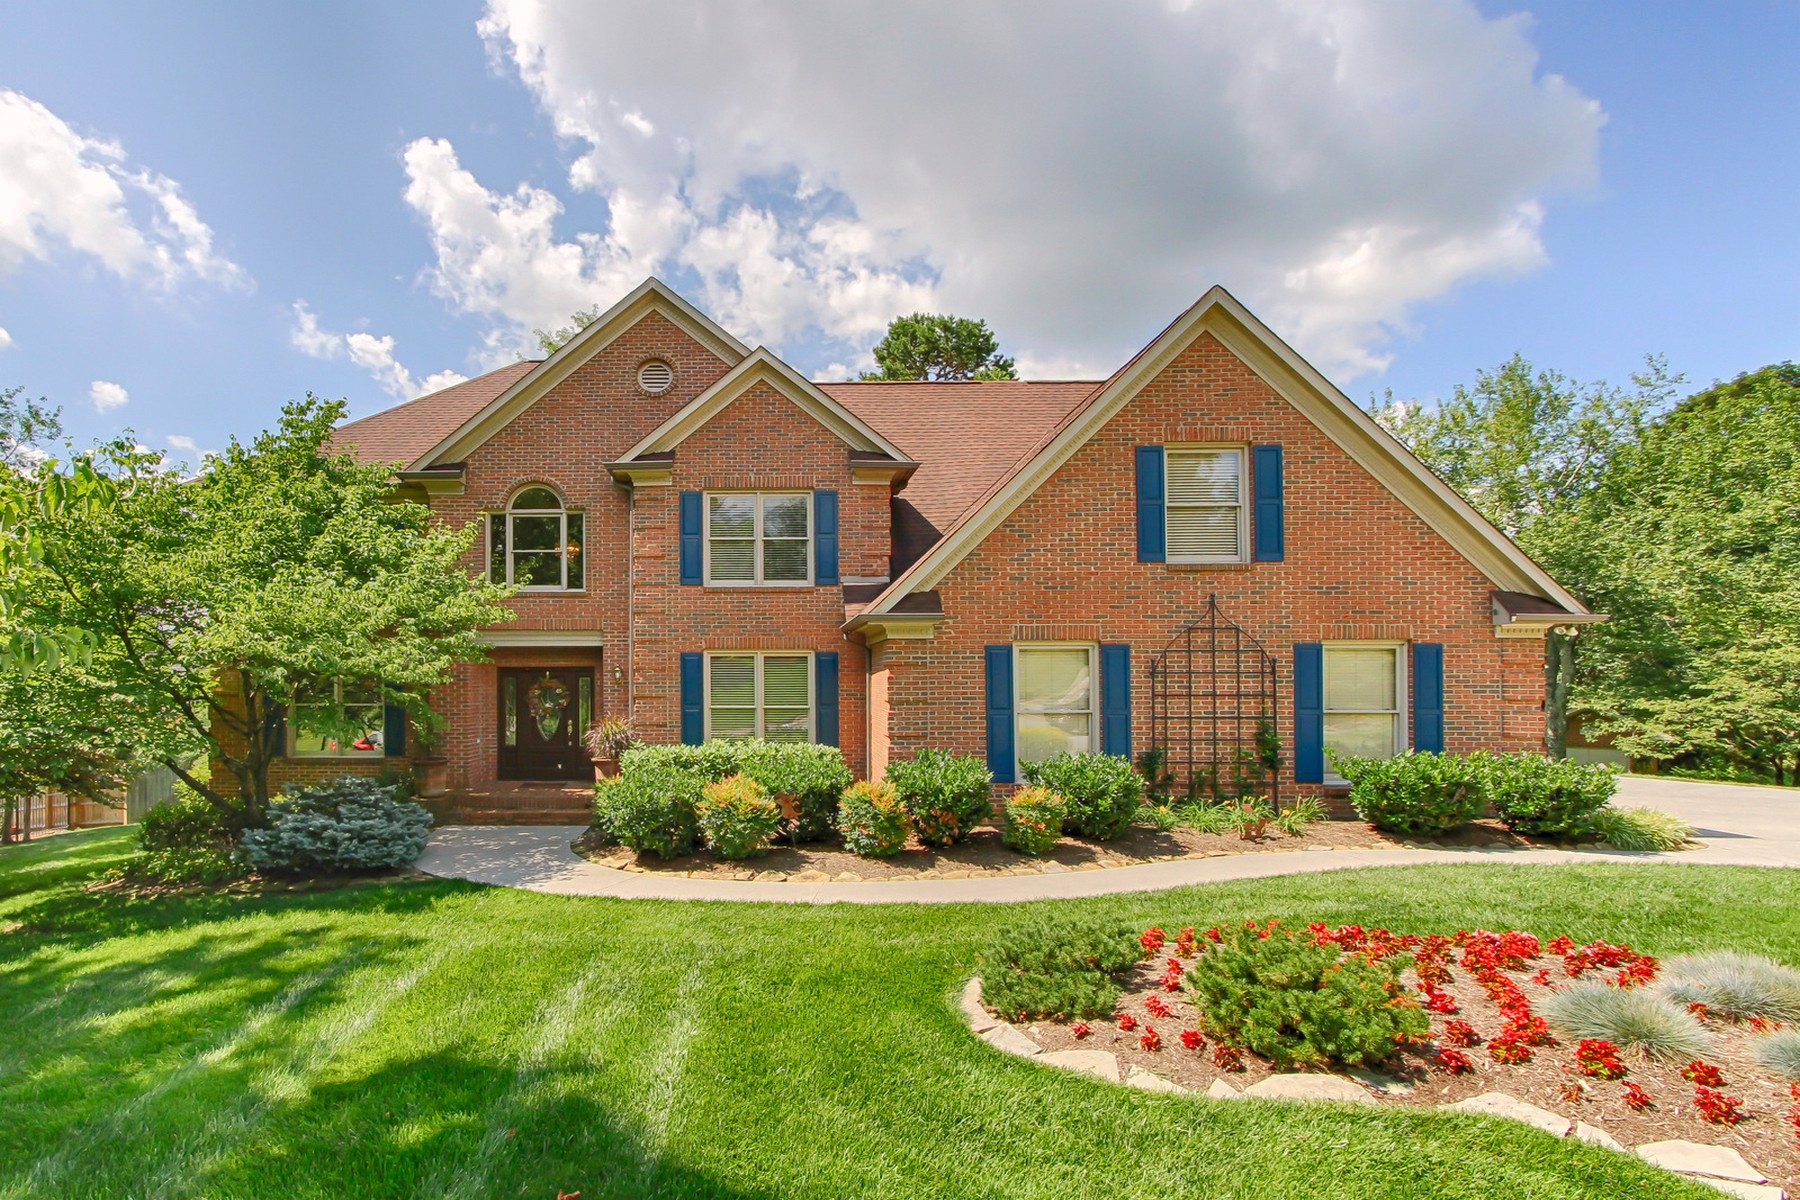 Single Family Home for Sale at Beautiful 2 Story All Brick Home 605 Werndl Drive Knoxville, Tennessee, 37934 United States